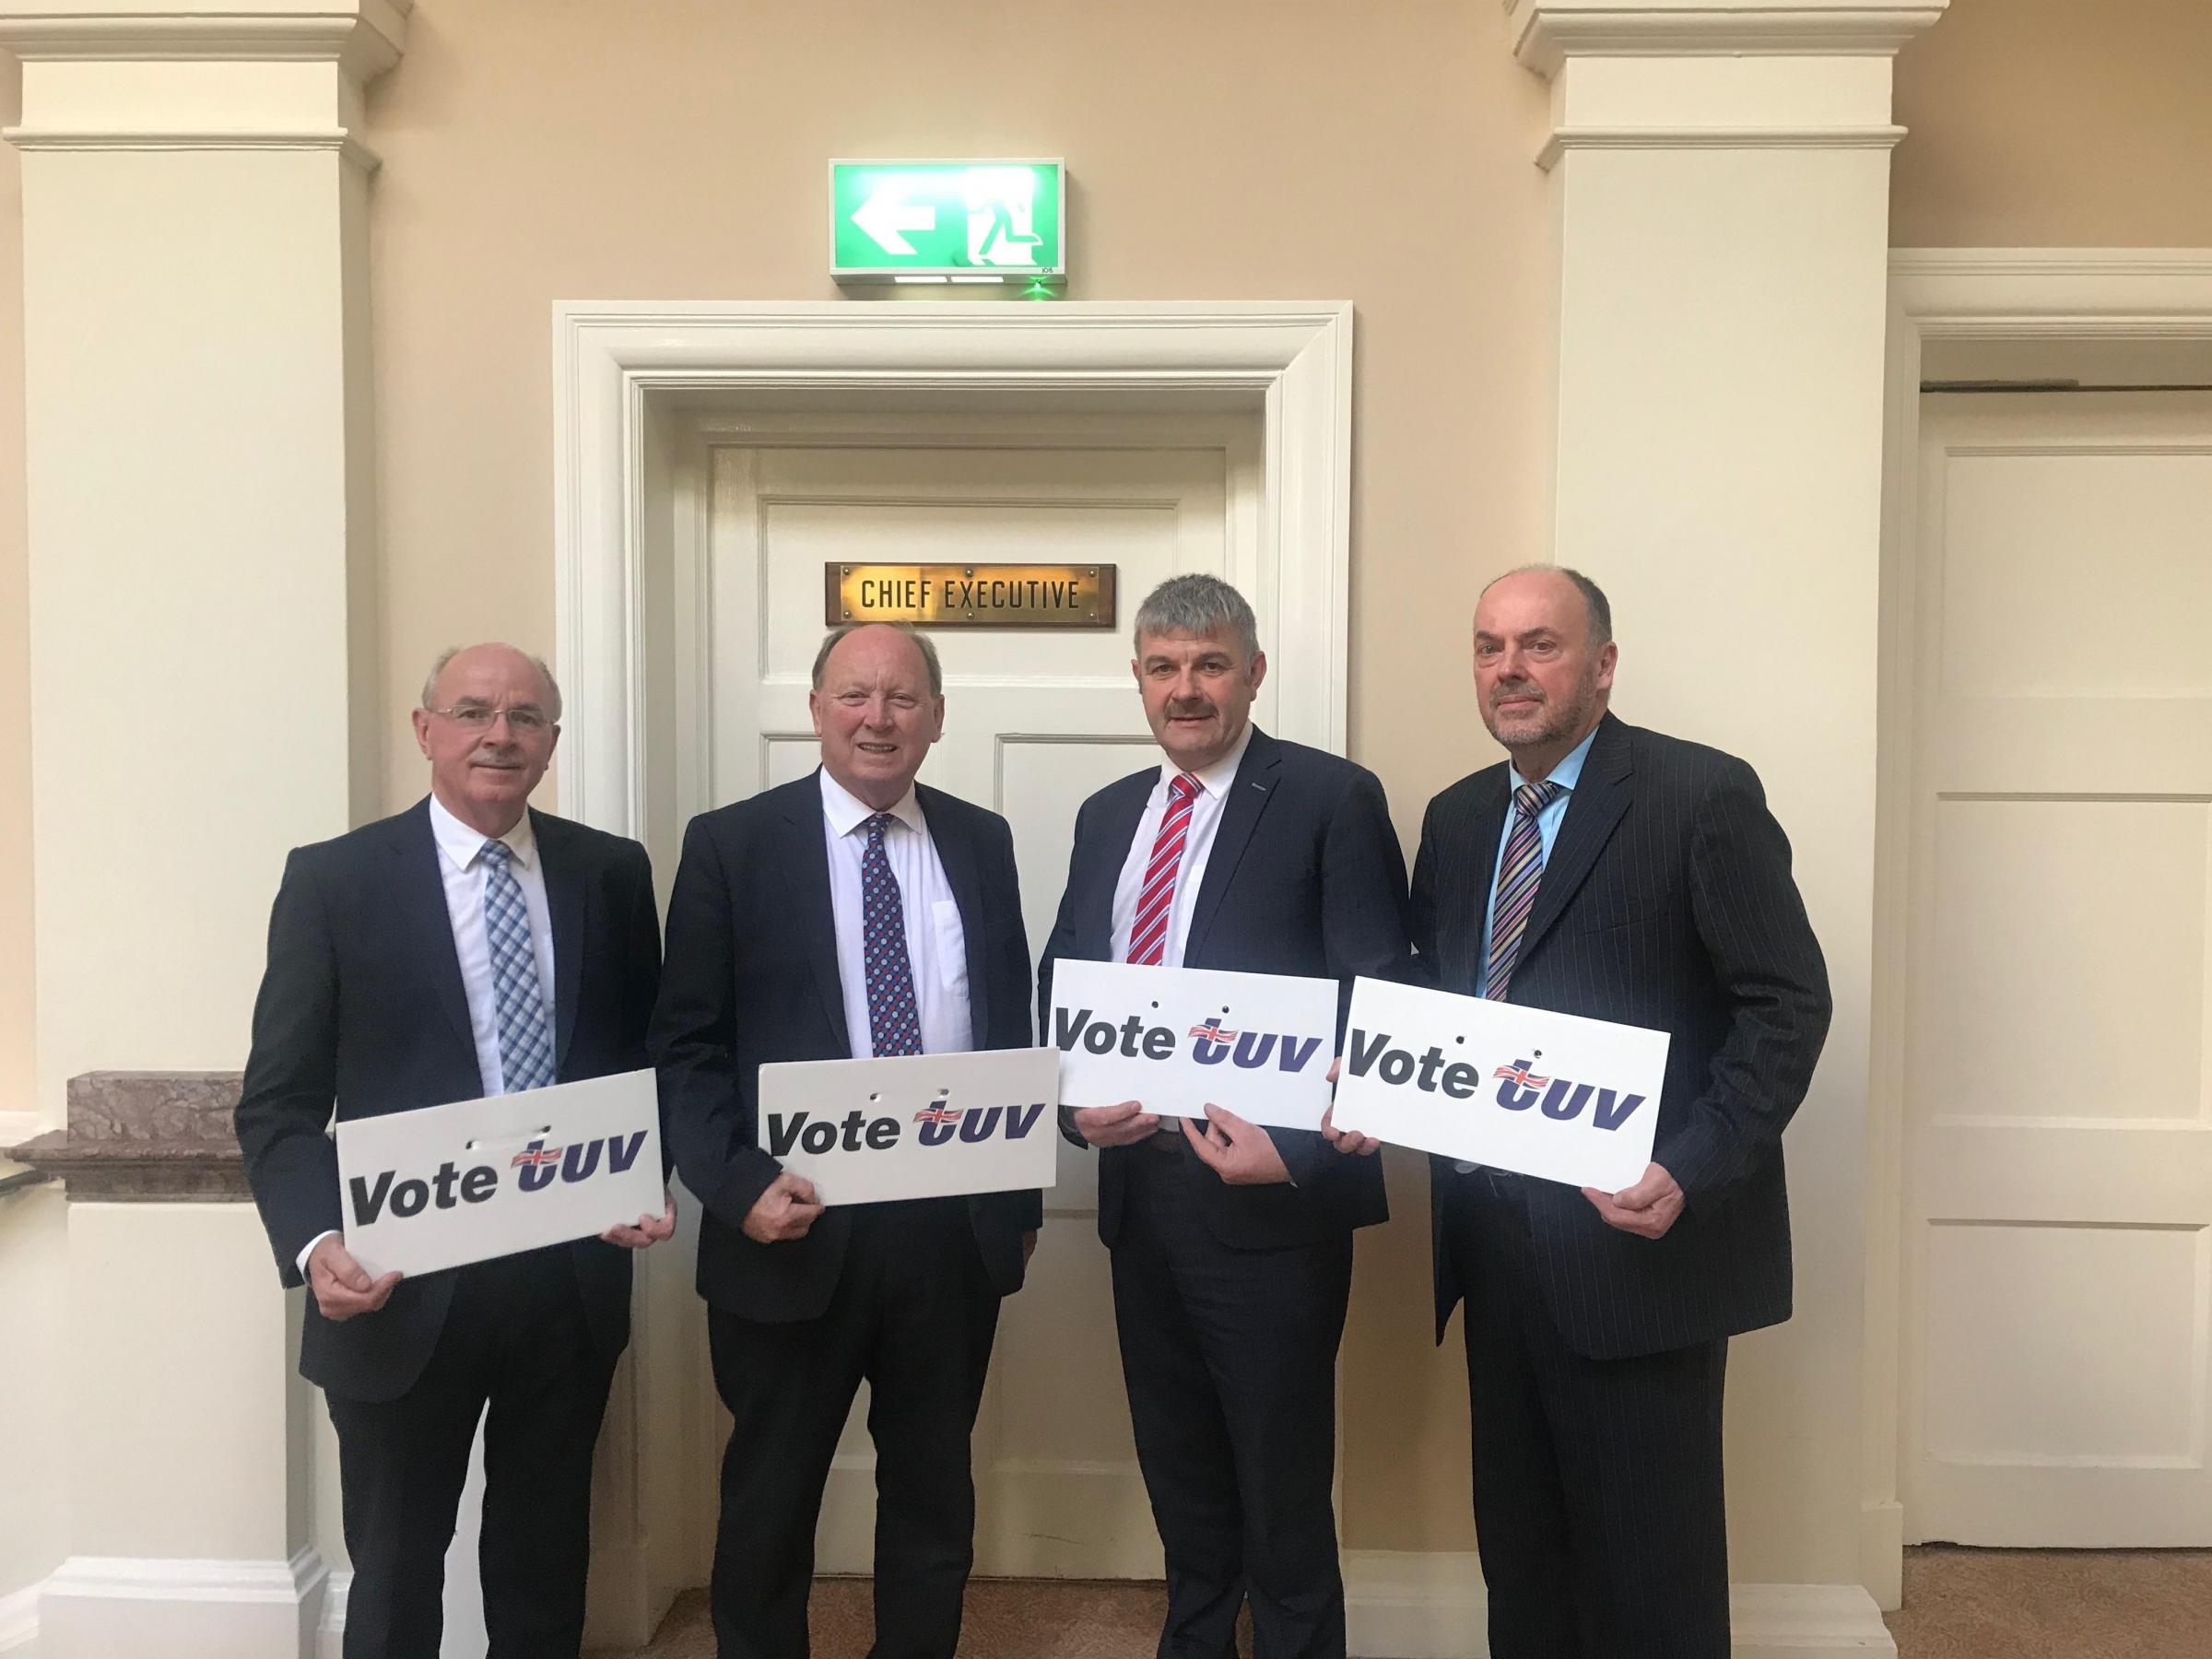 TUV candidates with their party leader Jim Allister (second from left) at the Townhall. From left - Charlie Chittick (Omagh Town), Donald Crawford (Enniskillen) and Alex Elliott (Erne North)